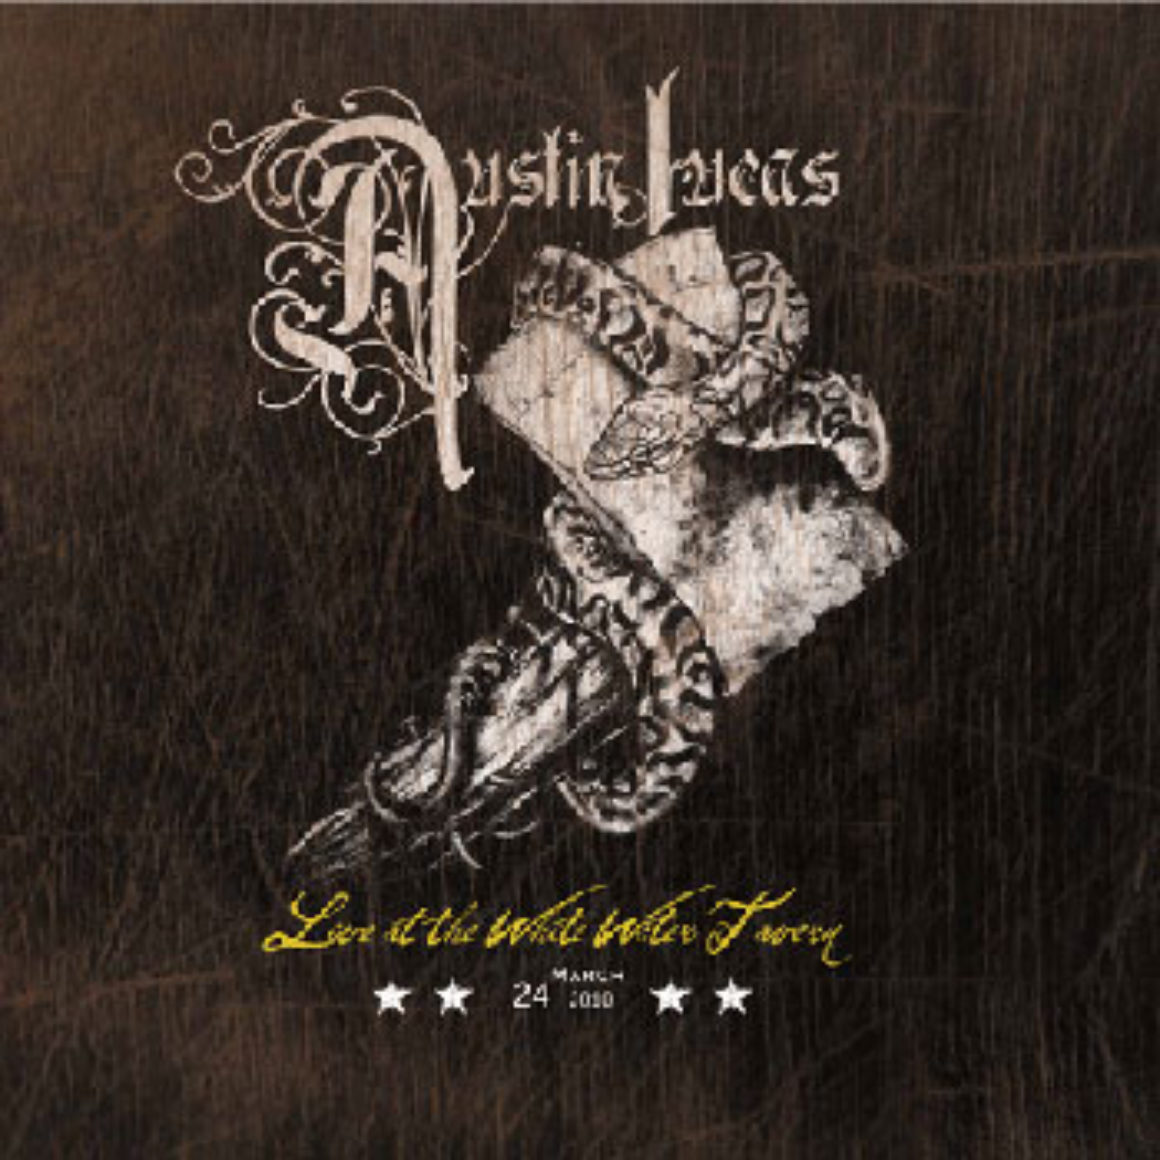 Austin Lucas - Live At The White Water Tavern